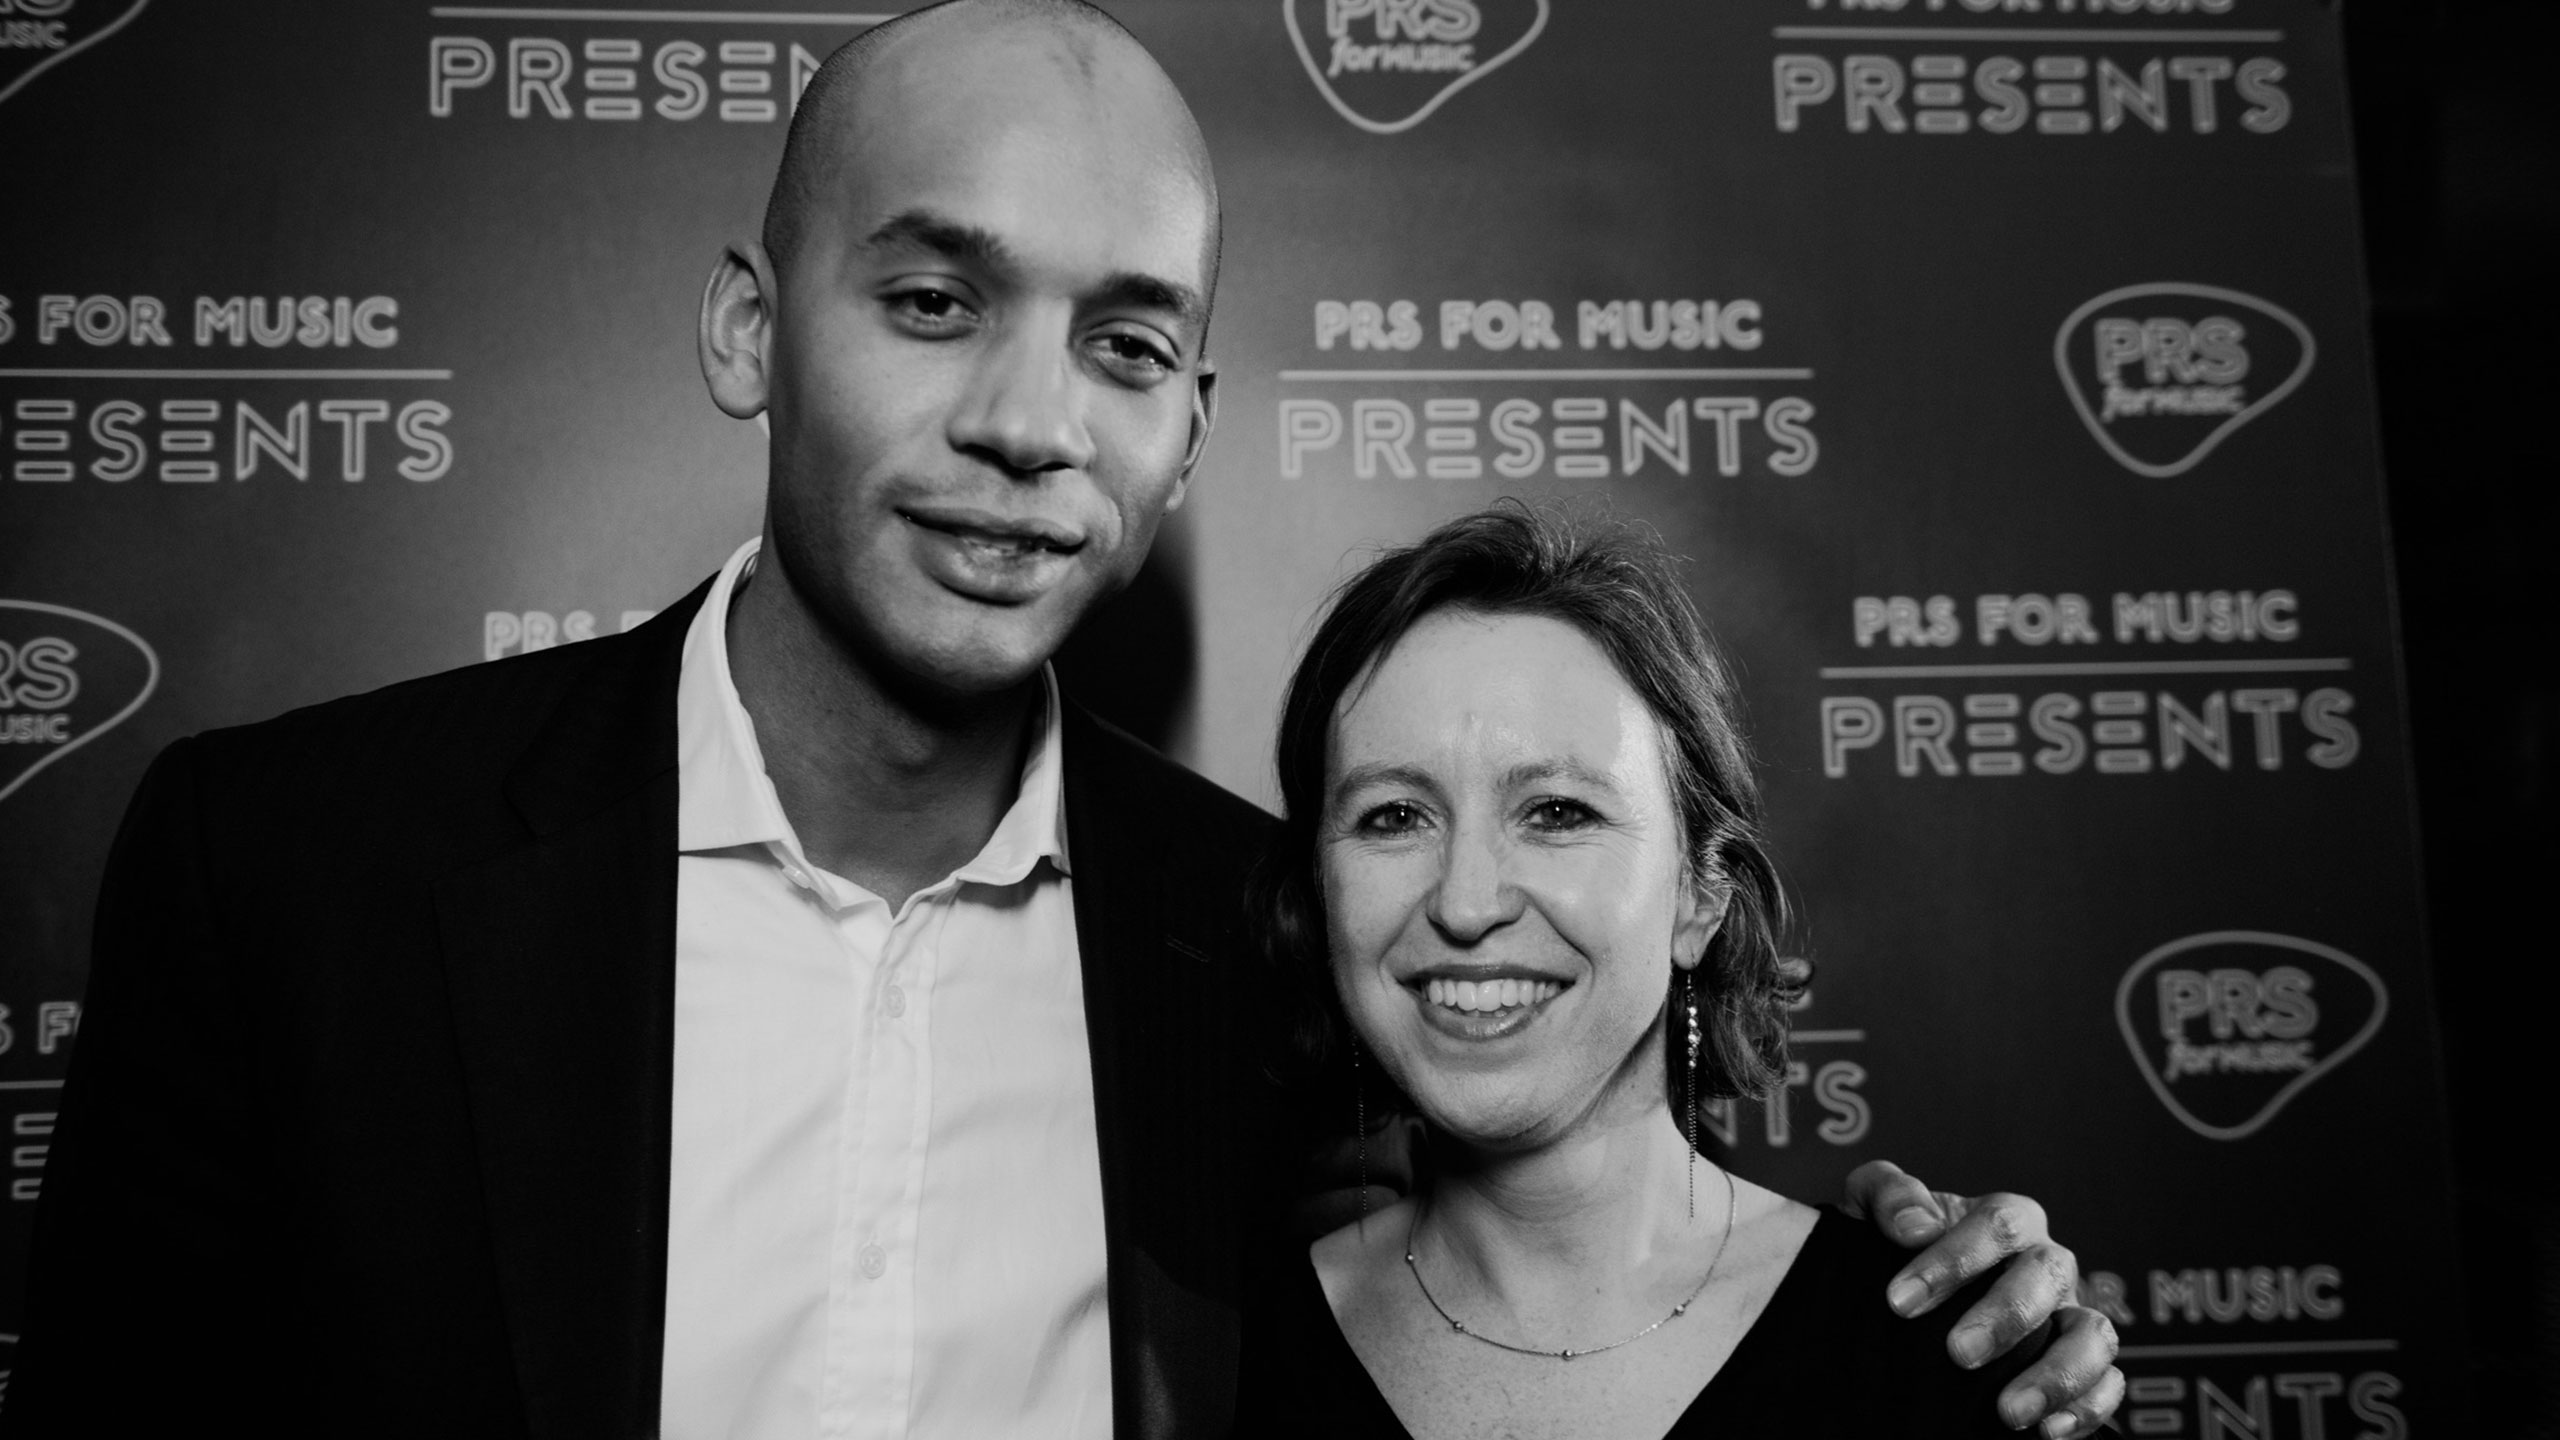 Chuka Umunna with a staff member at PRS for Music Presents